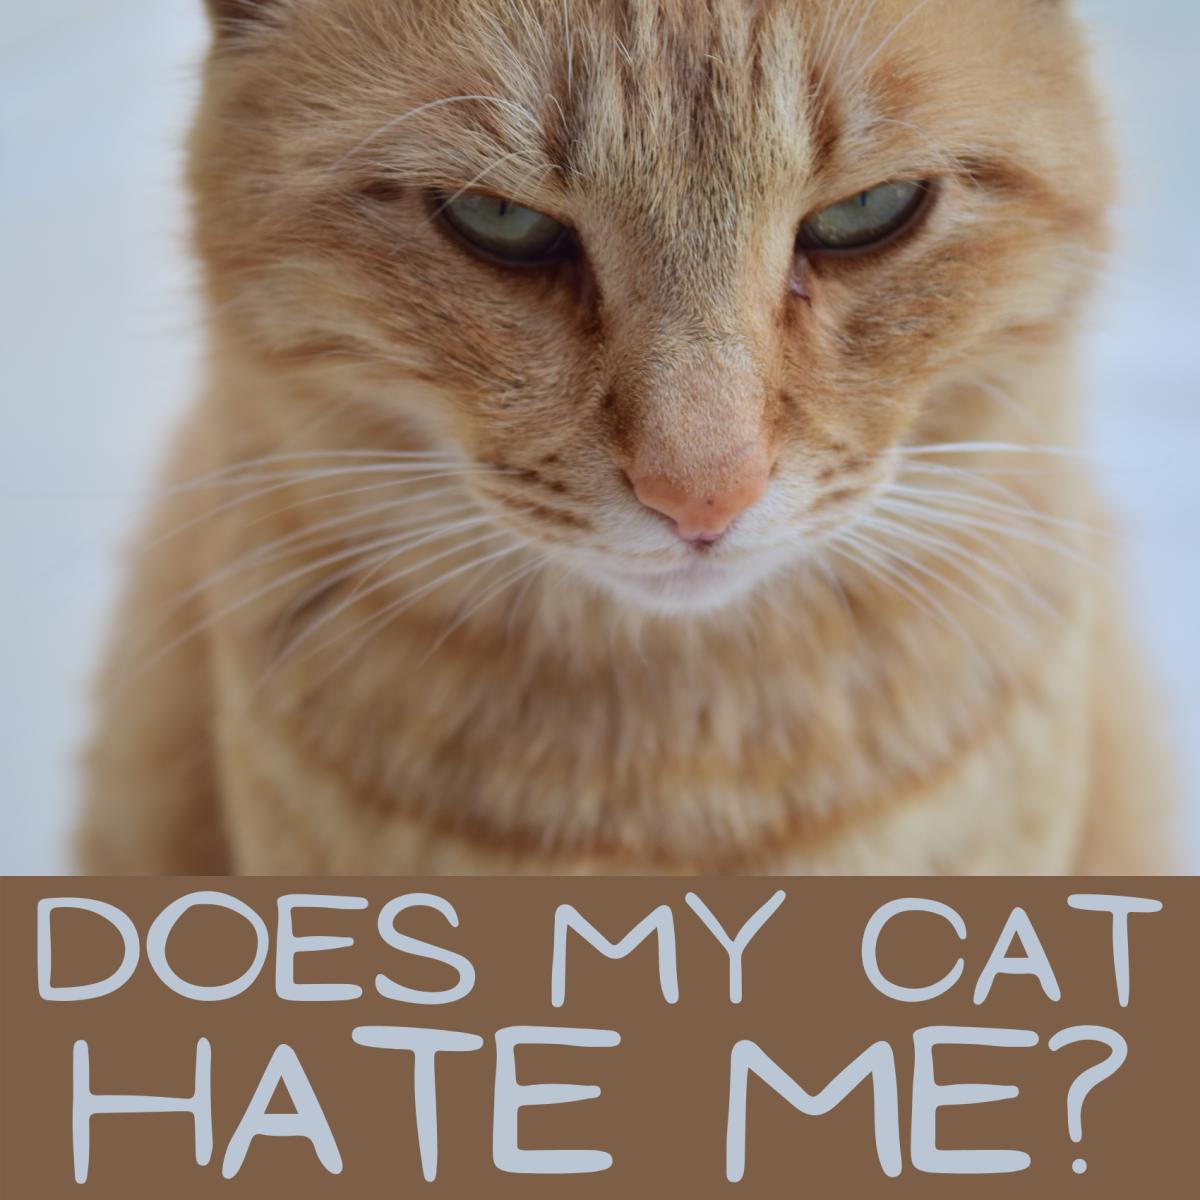 Does your cat hate you? A list of signs to look for.